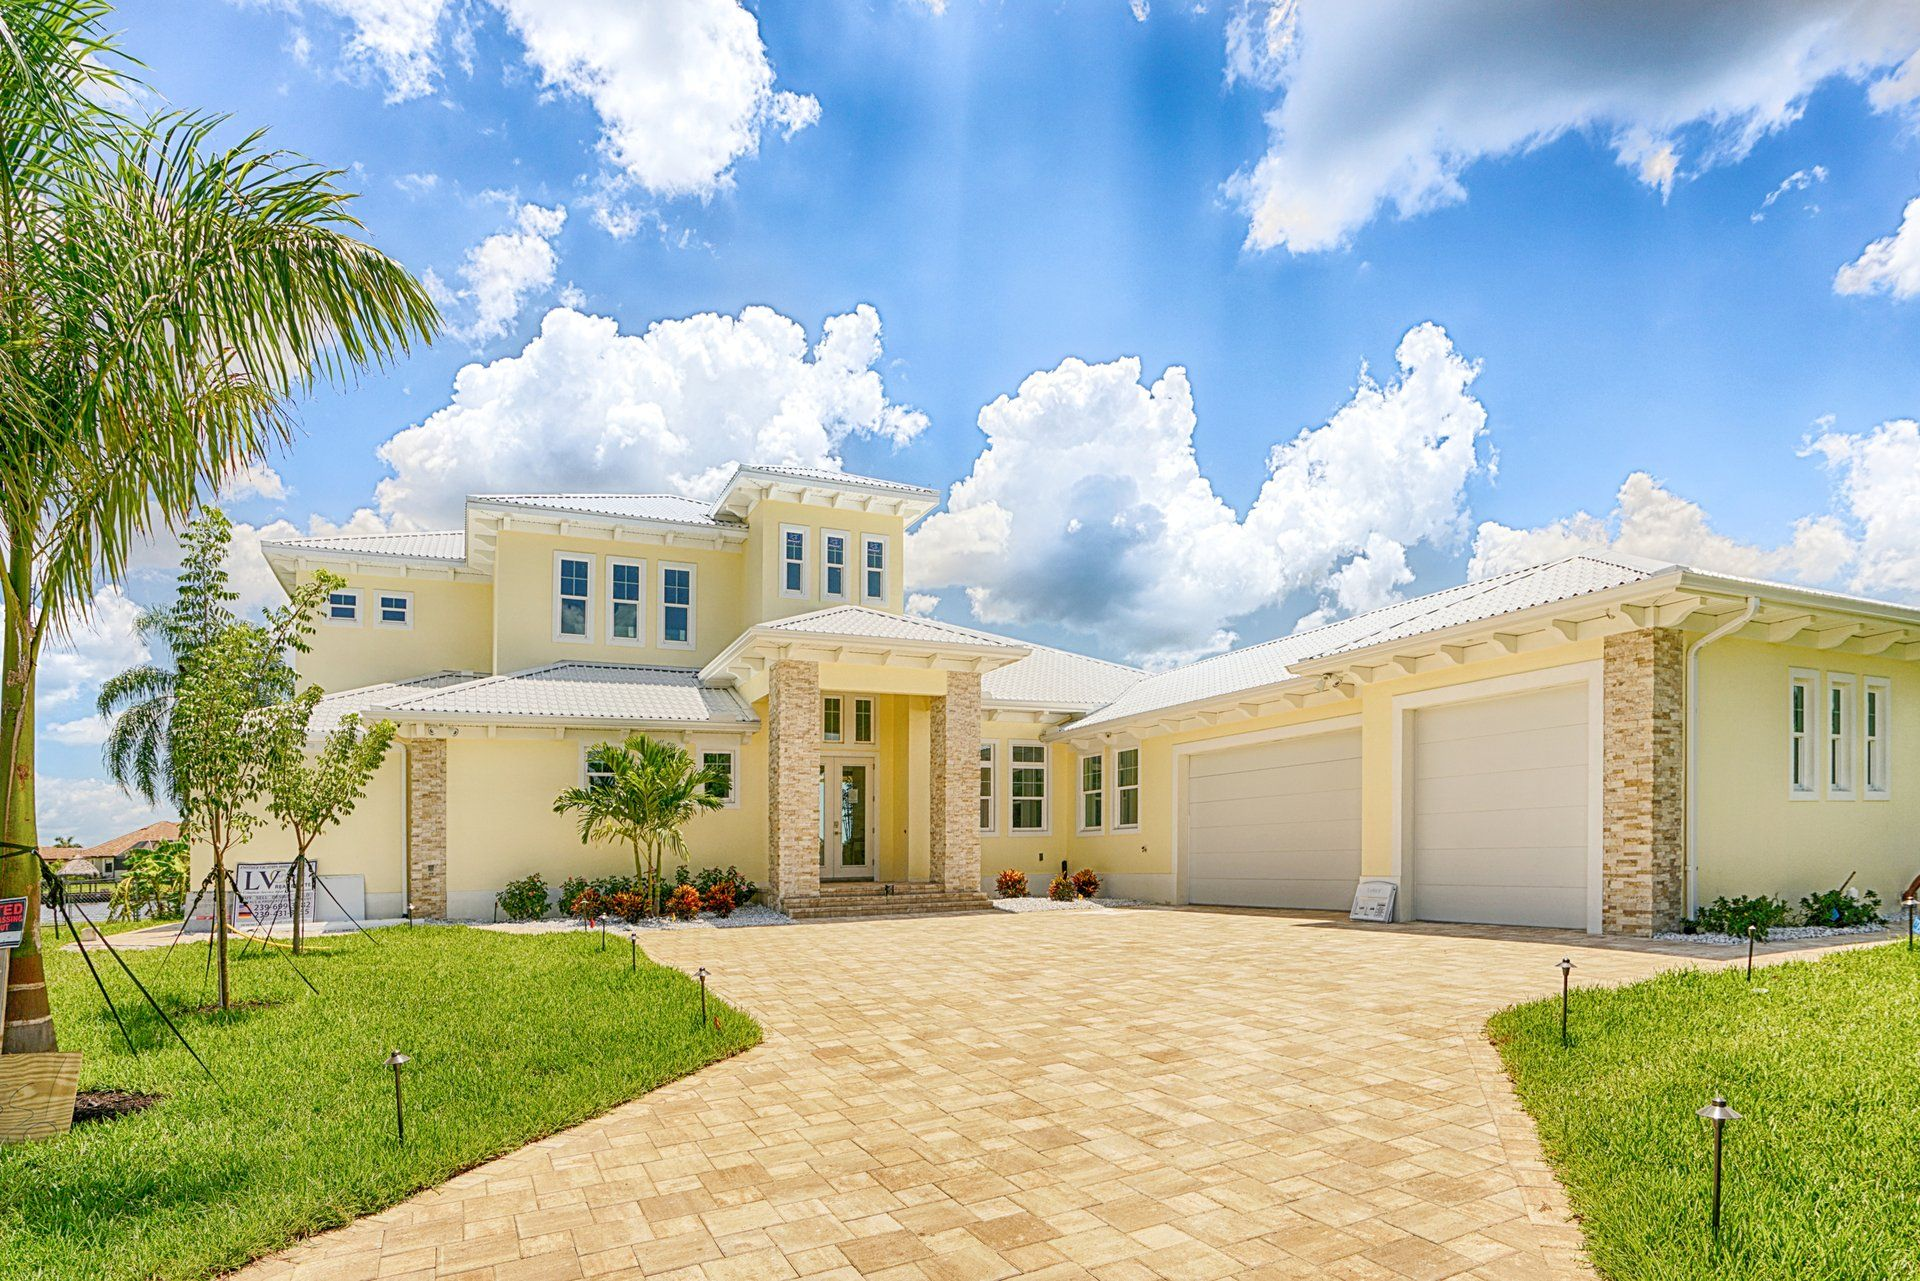 What Are The Benefits Of Choosing Villa Rental If You